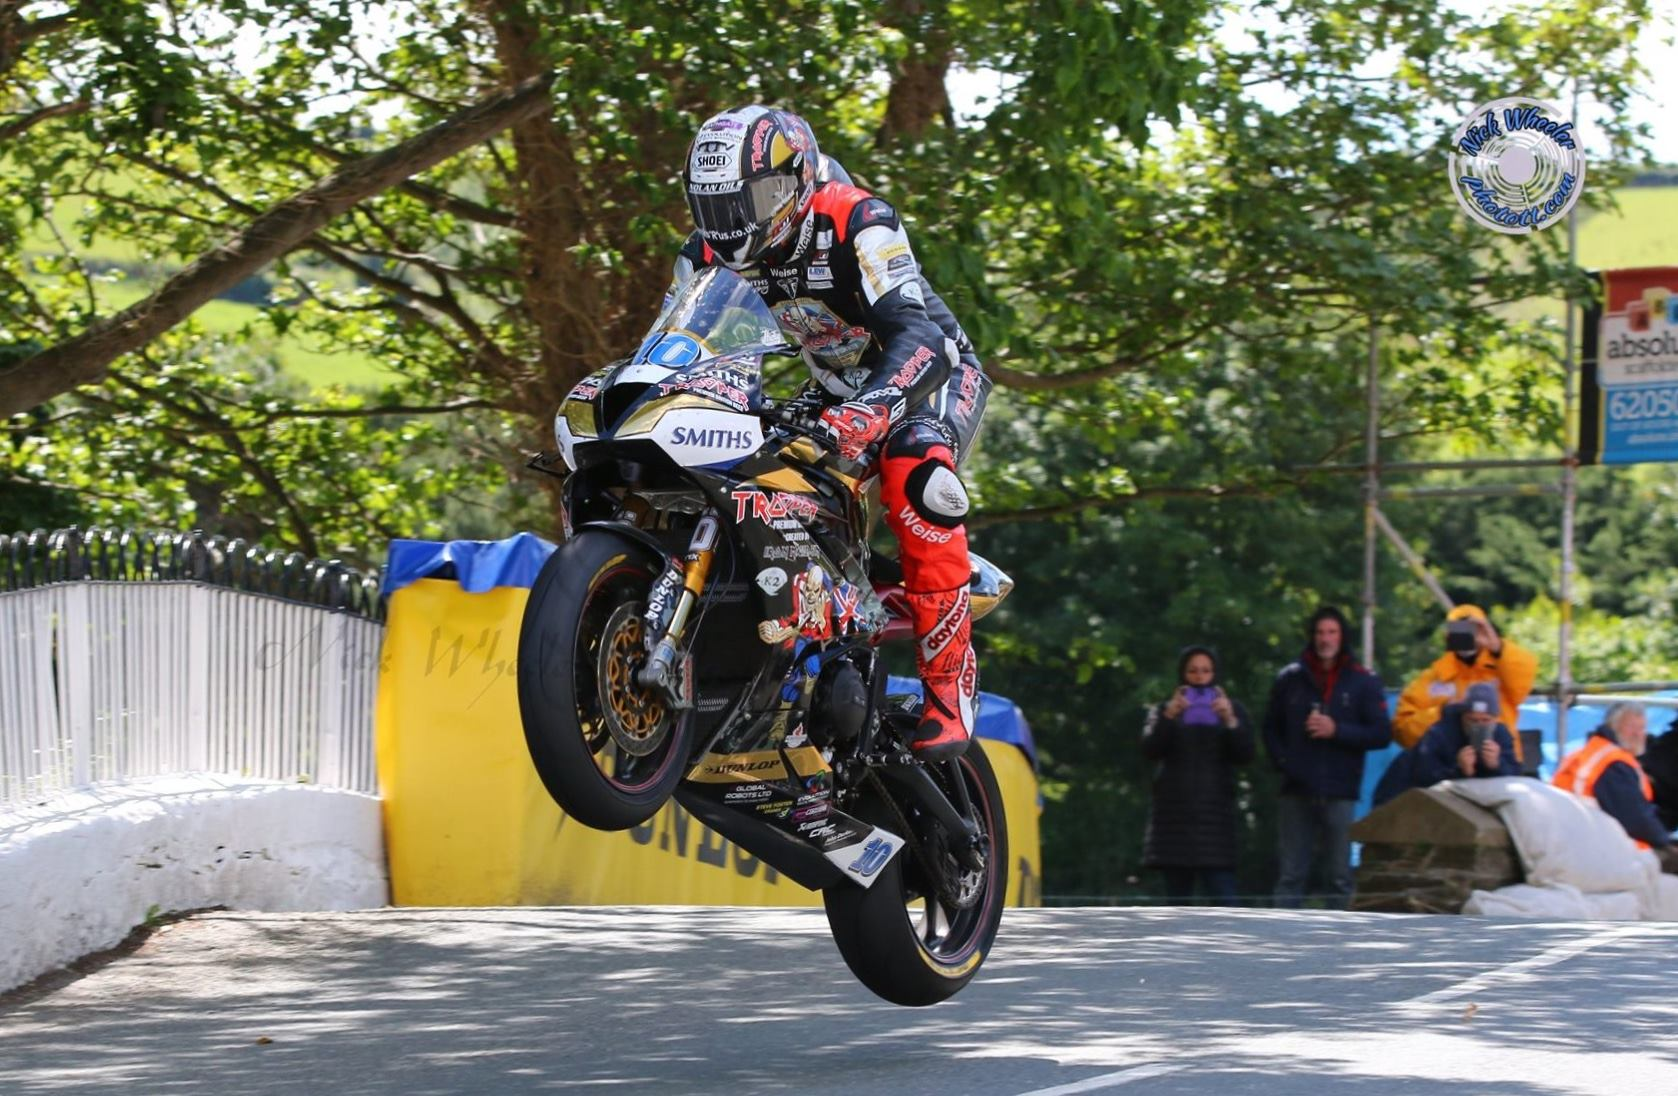 TT Goes Live – All The Details